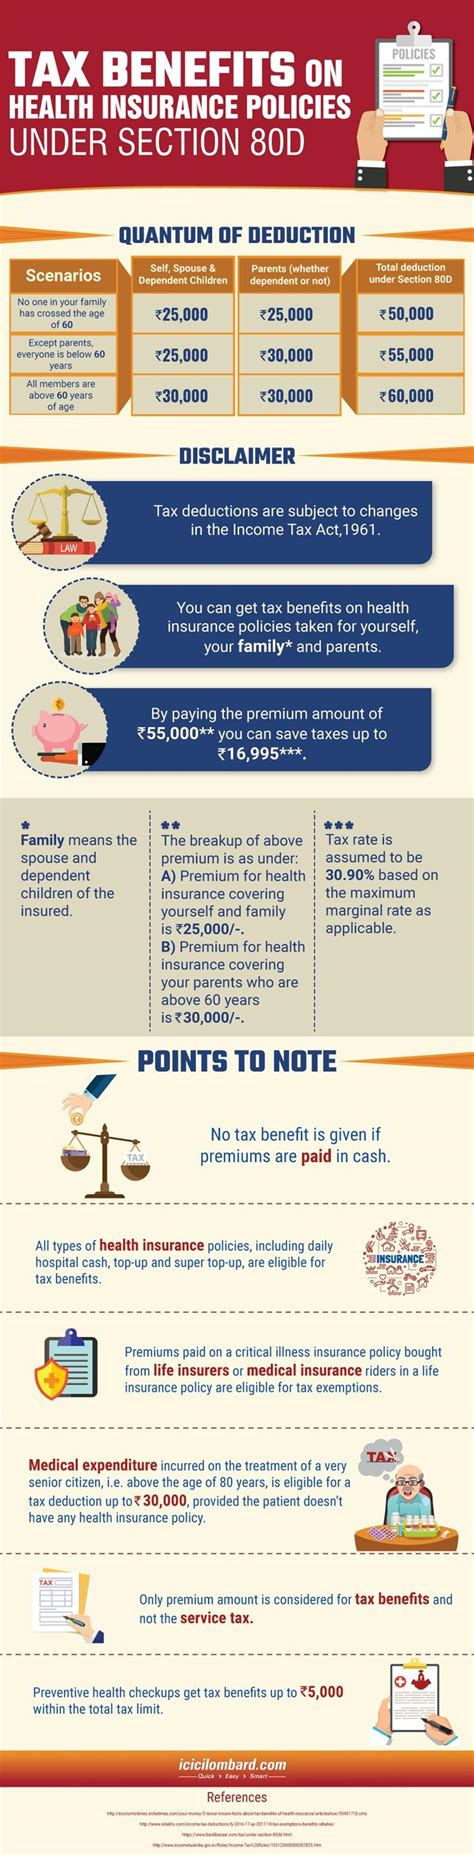 medical insurance under section 80d tax benefits on health insurance policies under section 80d